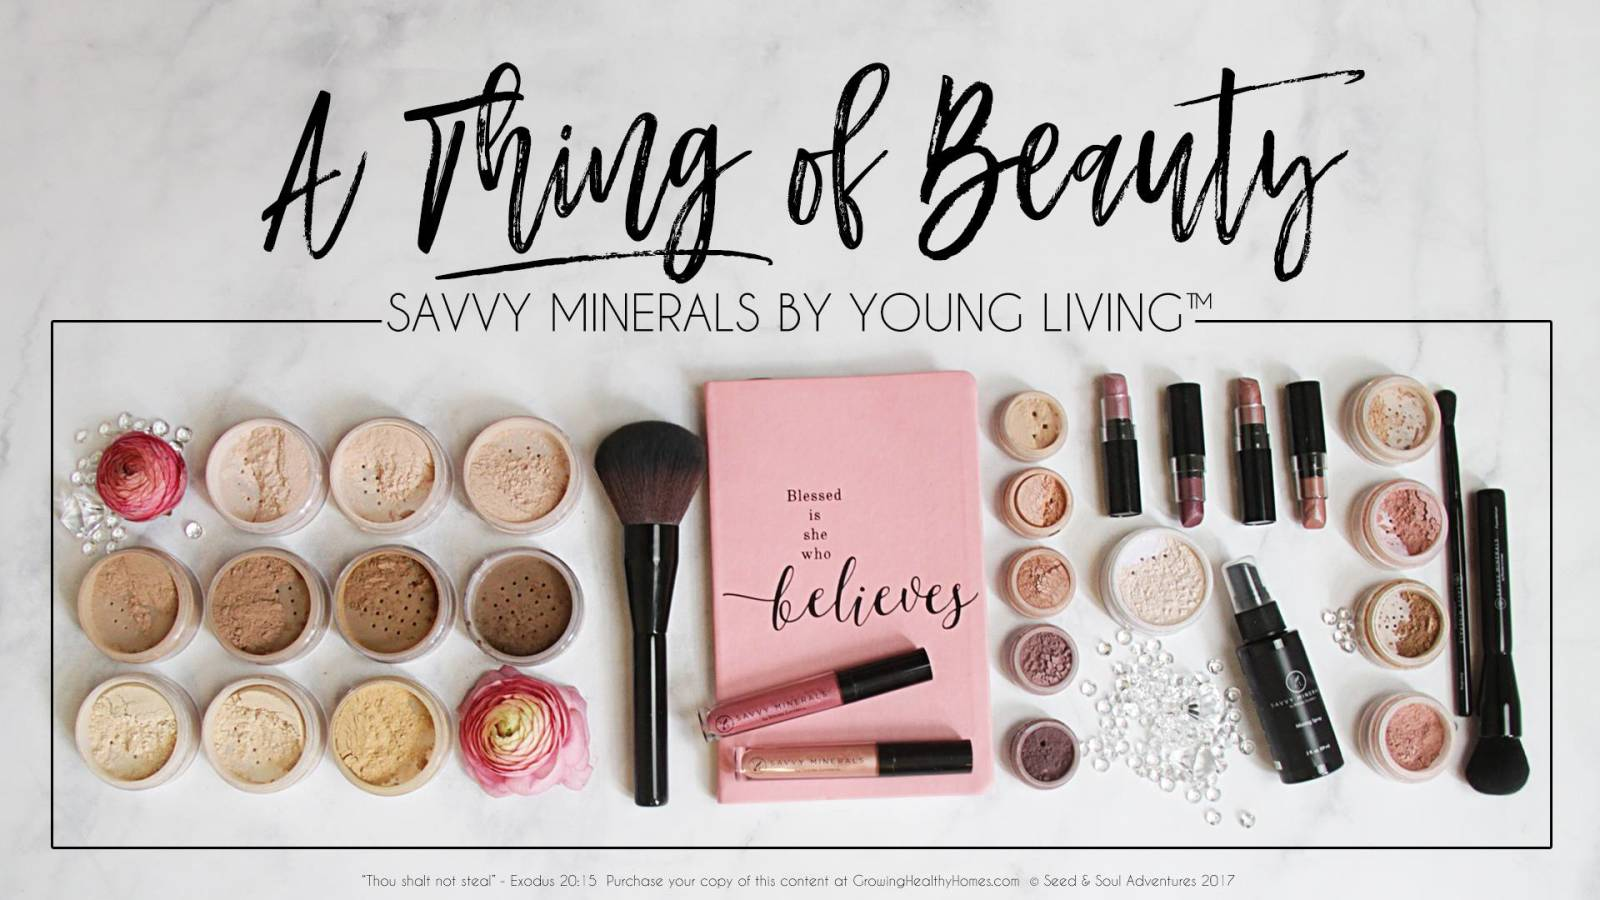 Savvy Minerals by Young Living: A Thing of Beauty!  Hosted by Diamond April Mier